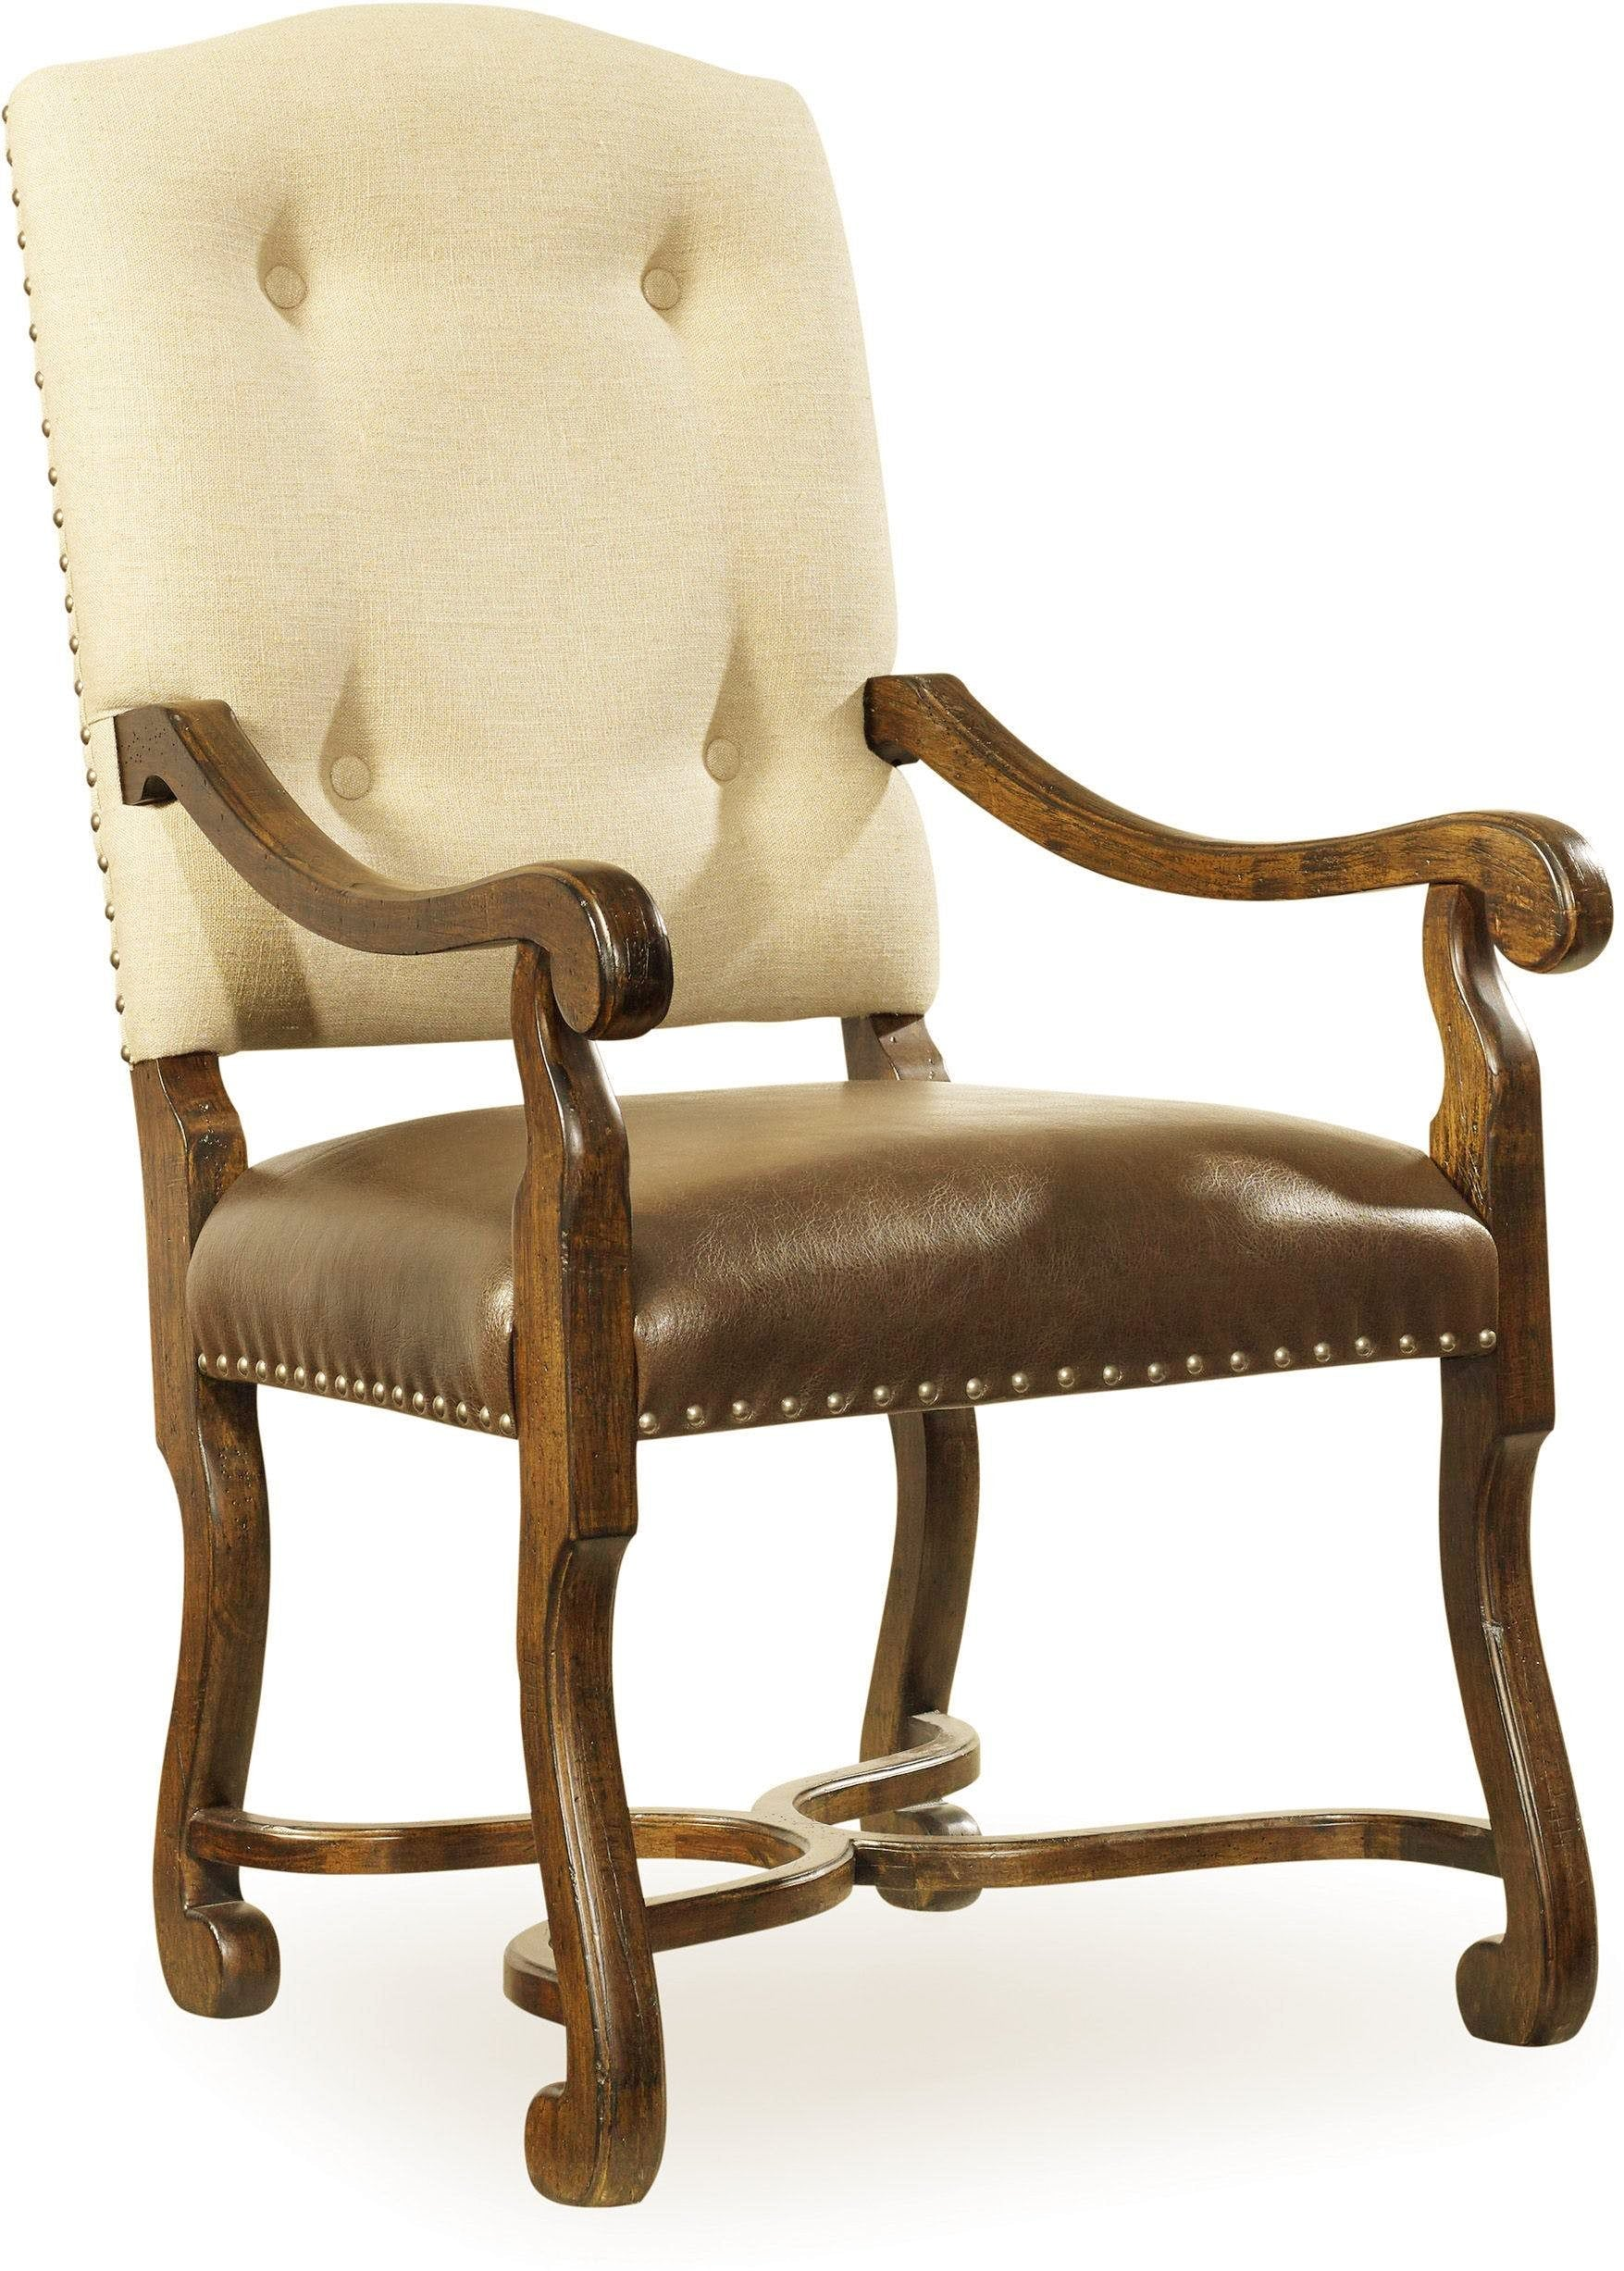 Bear Dining chair